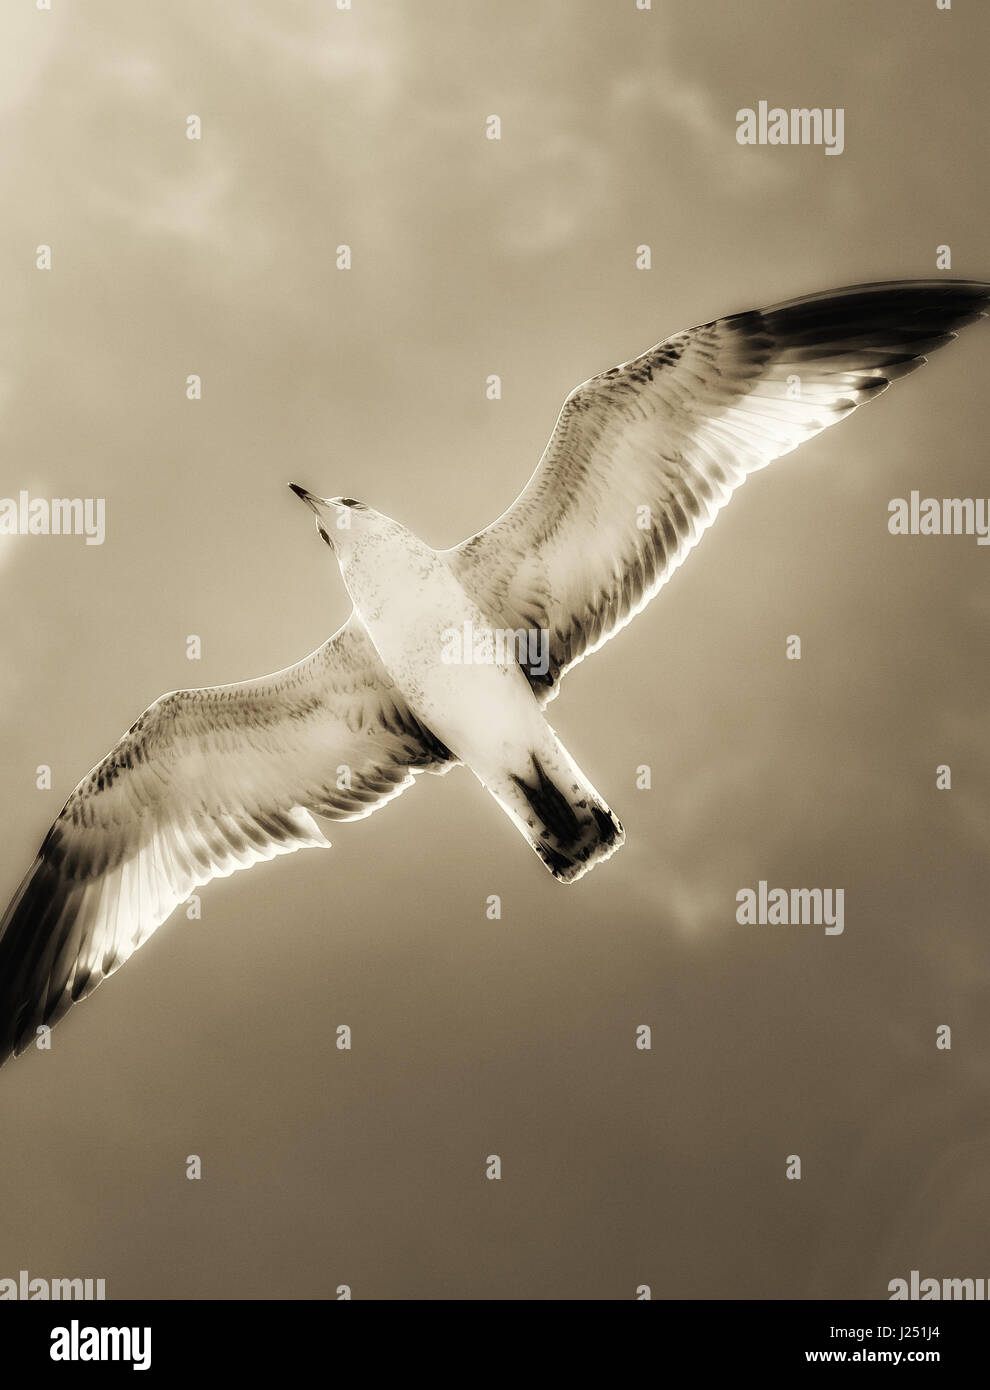 Bird flying free over the beach Stock Photo